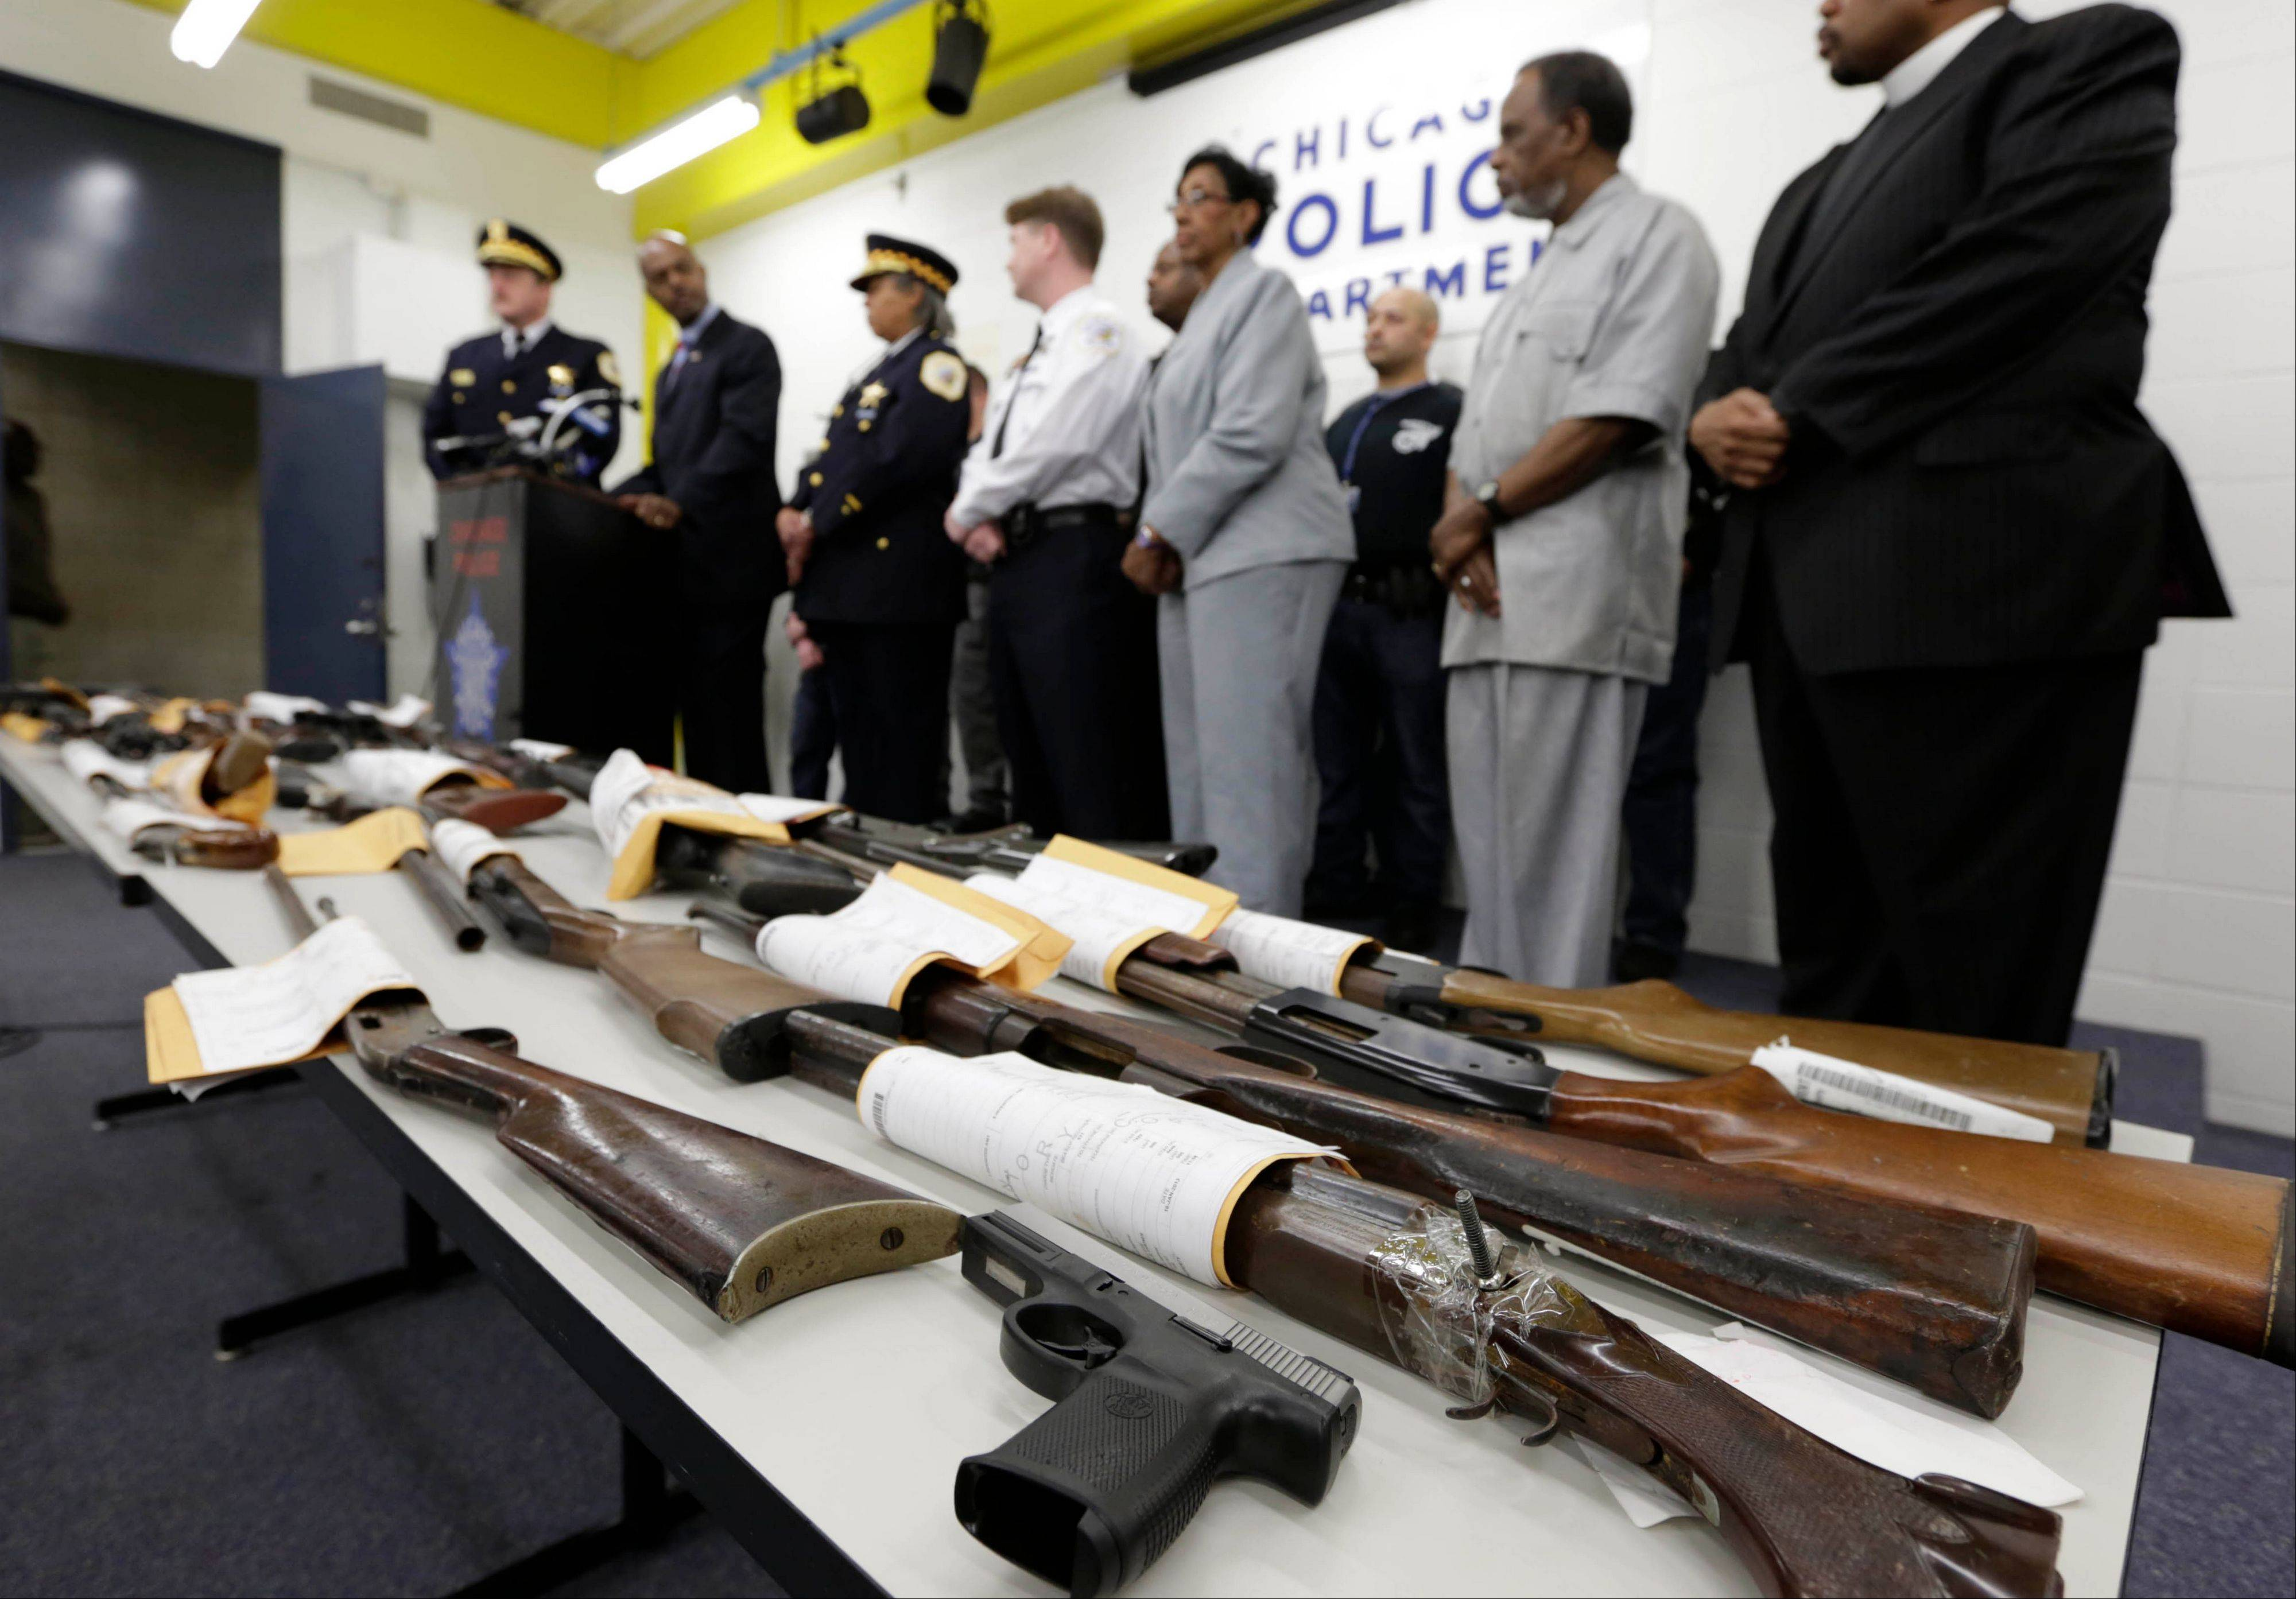 These are some of the 574 firearms seized by Chicago authorities in the first 28 days of January.